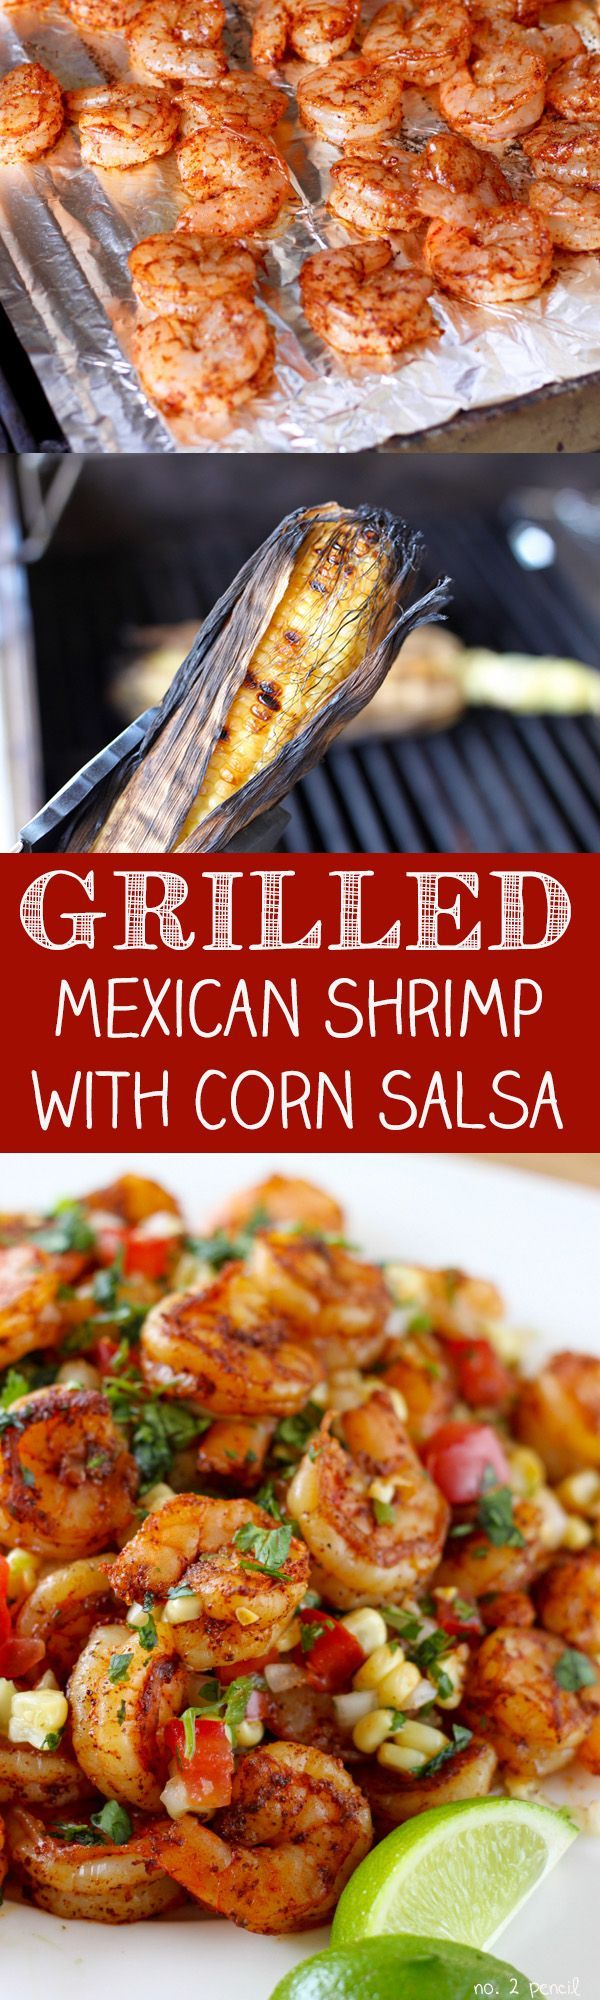 Mexican Grilled Shrimp with Fresh Corn Salsa- easy and delicious recipe perfect for dinner! You can use the leftovers to make a delicious seafood omelette for breakfast! More easy and homemade food recipes @ #no2pencil #food #recipeoftheday #drooling